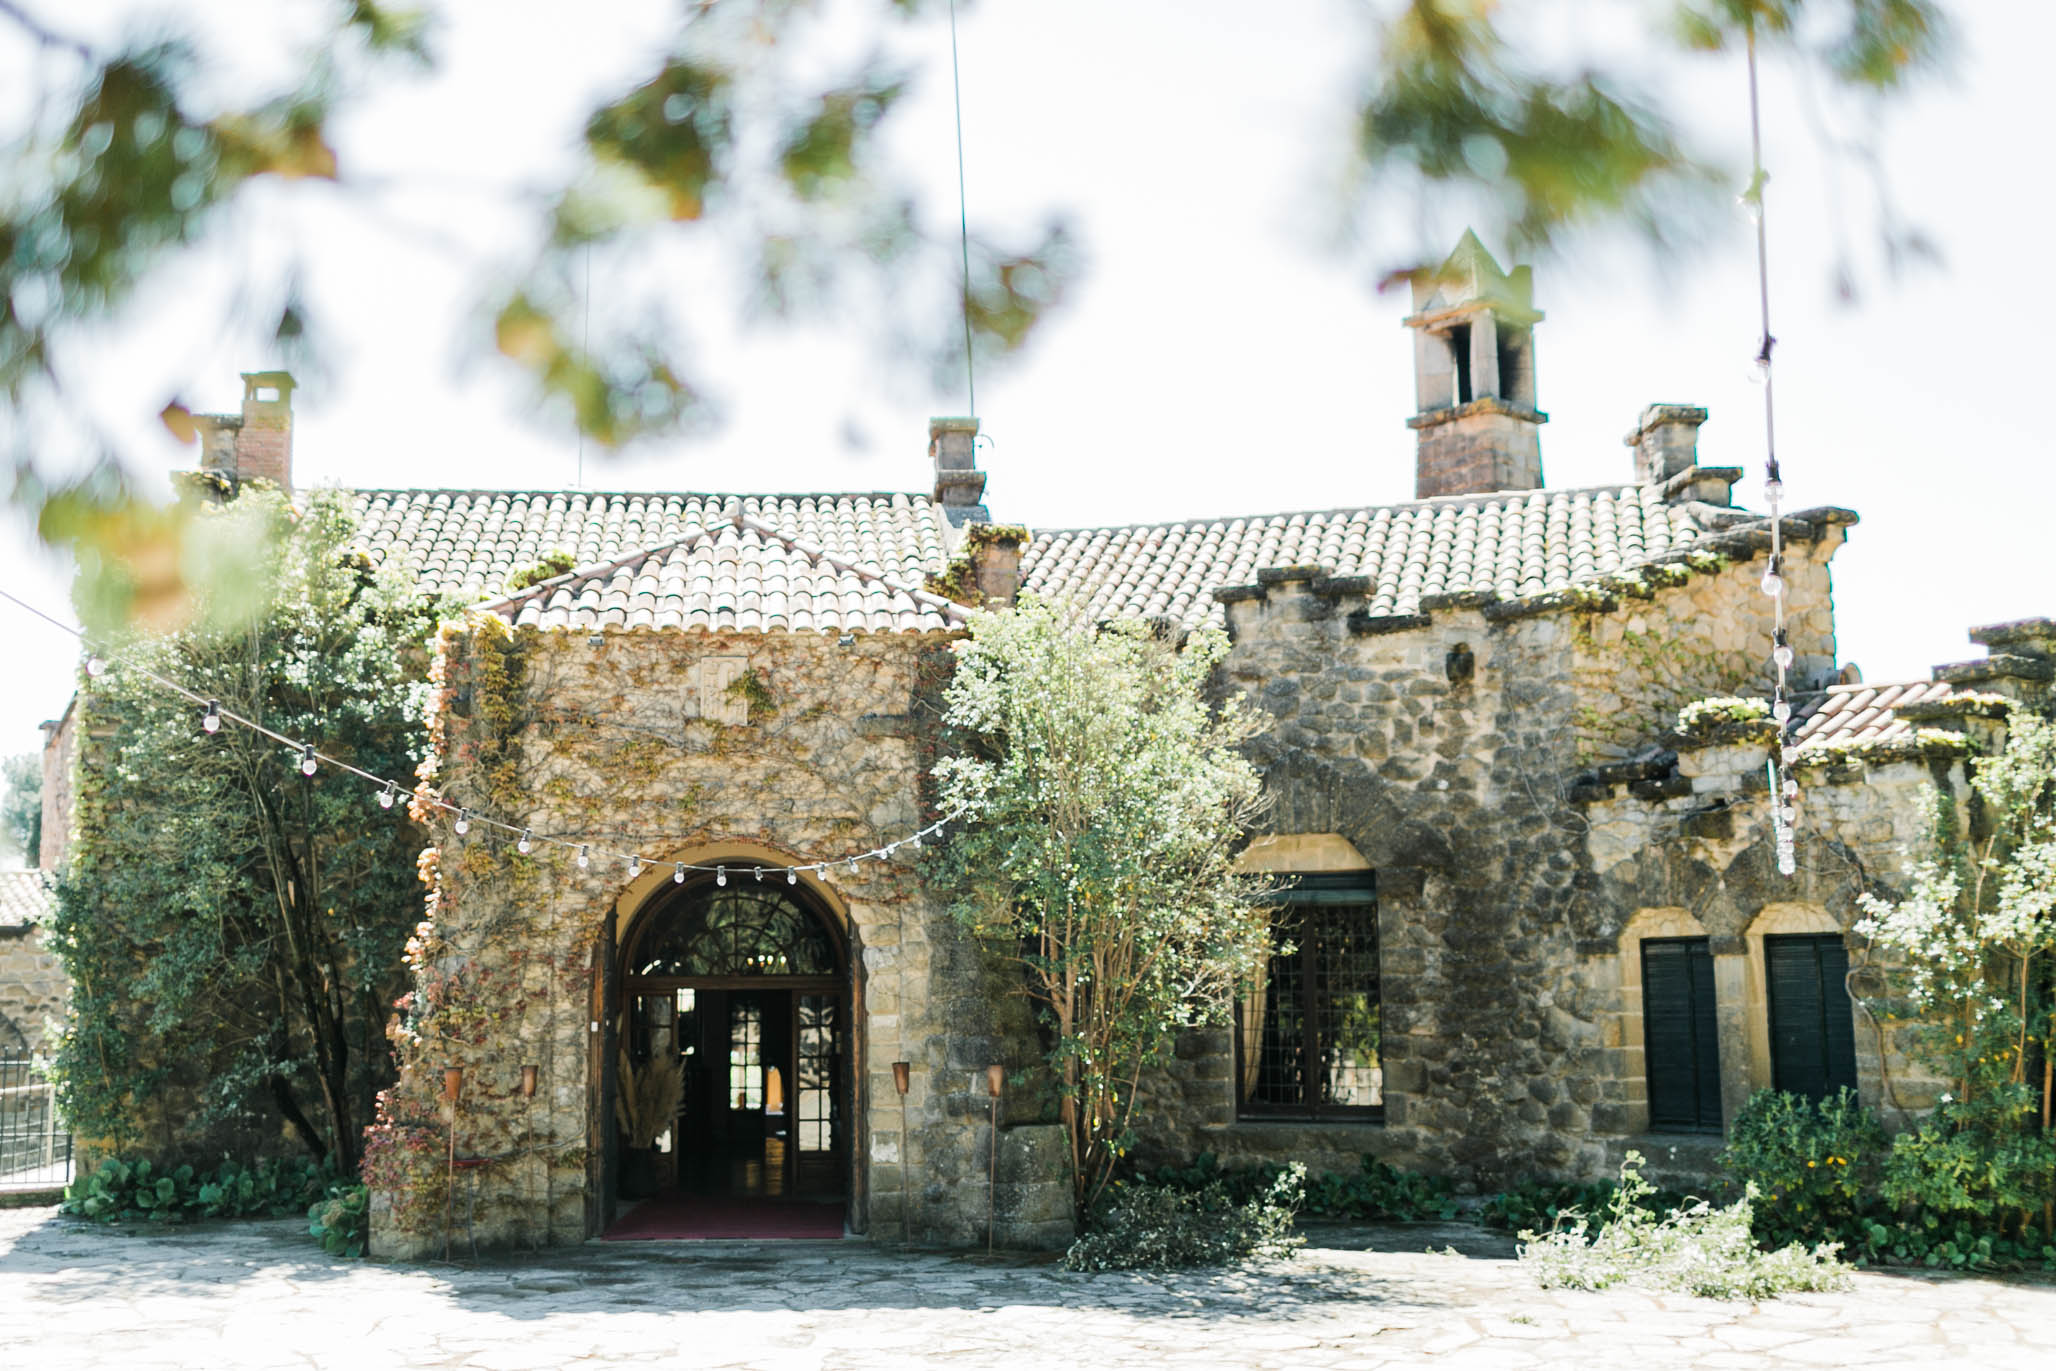 The weather was playing tricks on us this day. Sunny one moment, overcast the next. When we first arrived to capture the venue details, the sun was out high and bright but that didn't take away from the beauty of  La Baronia .